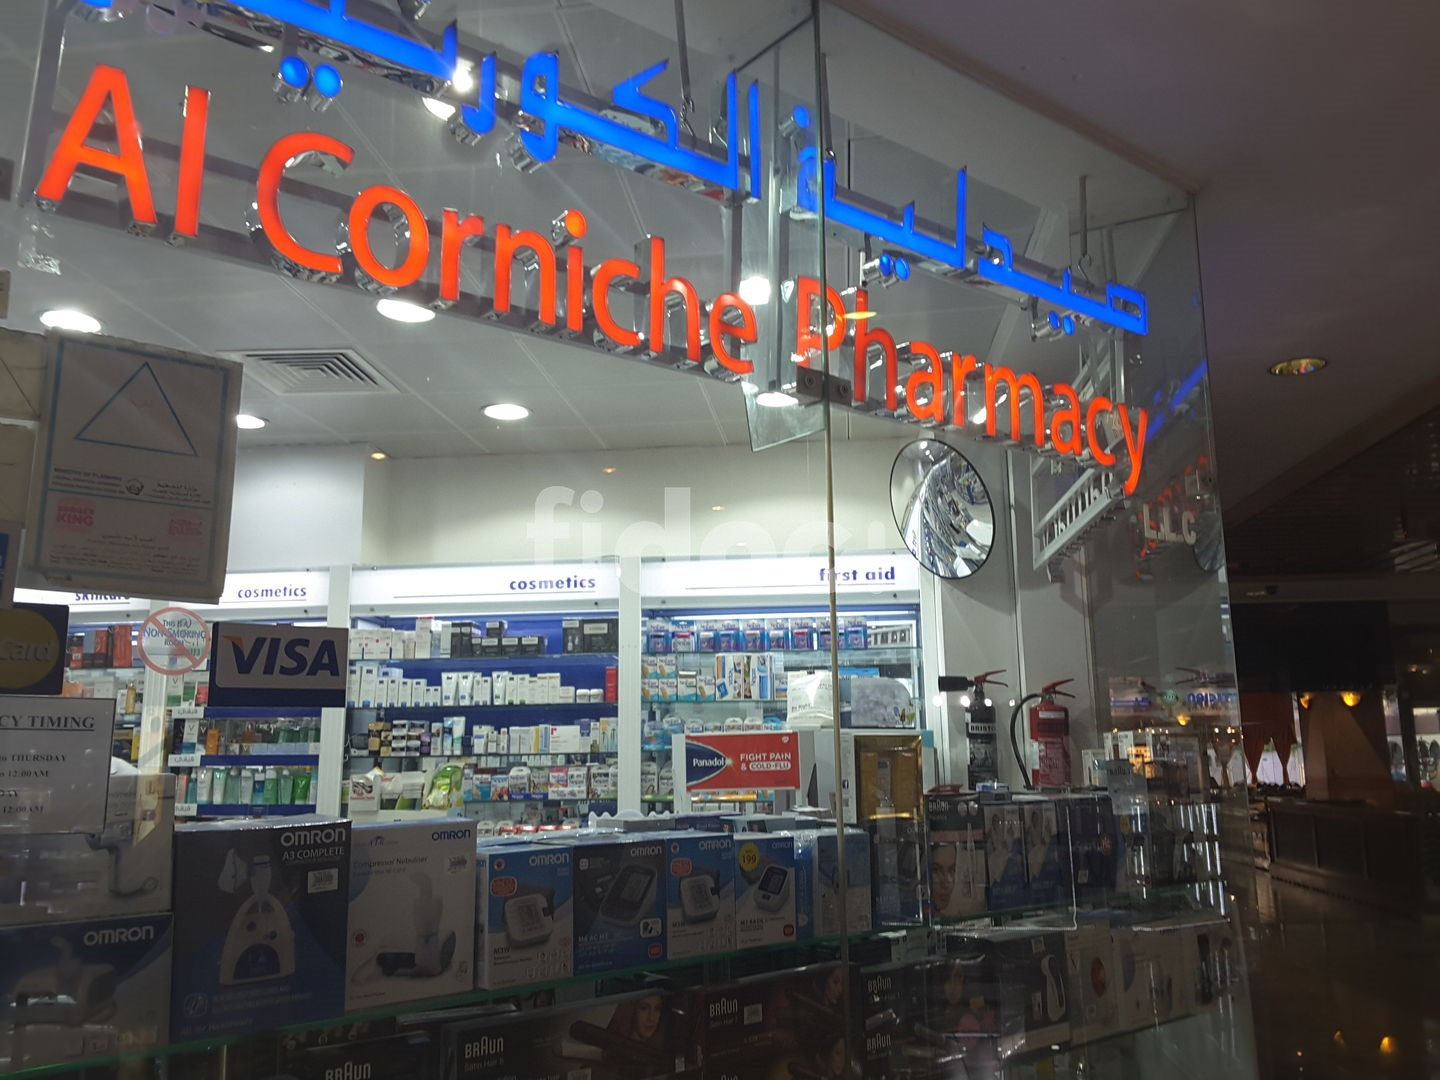 Al Corniche Pharmacy, Dubai